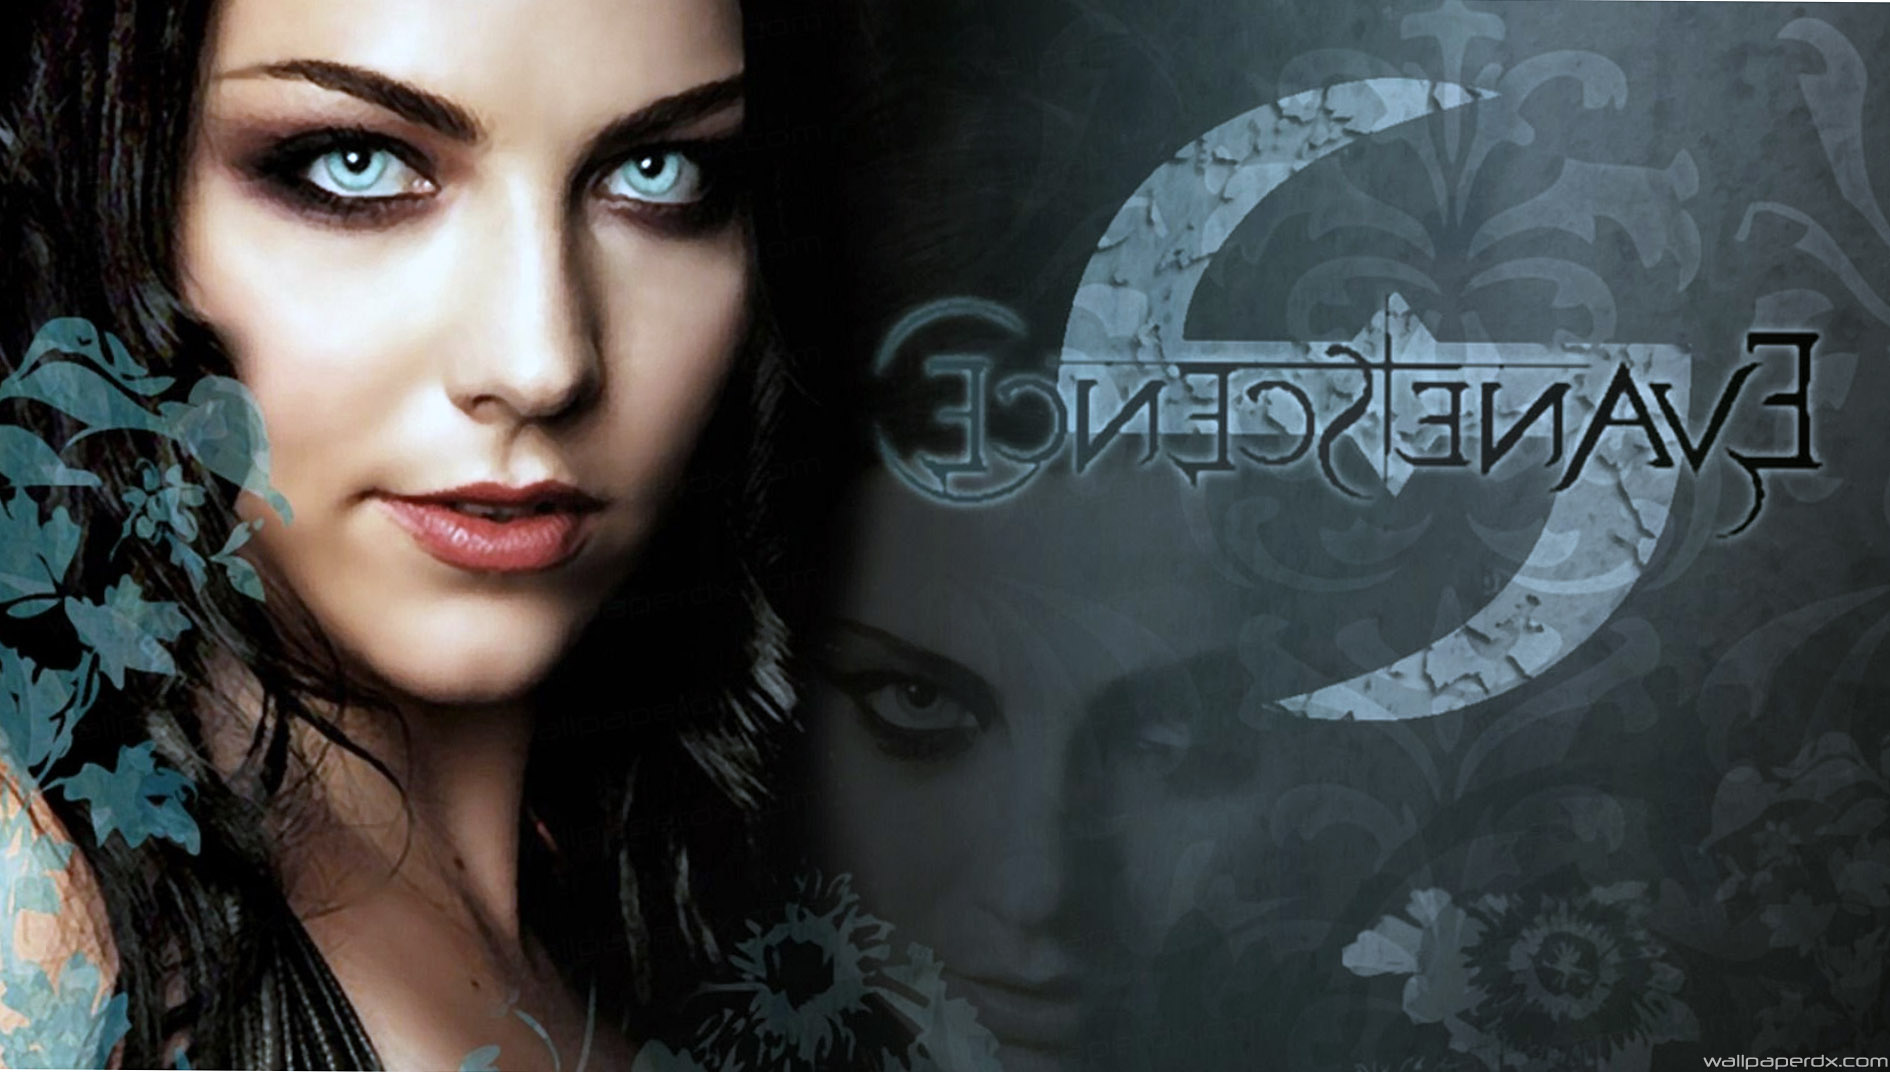 evanescence letters face hair eyes hd wallpaper   Full Hd 1890x1072